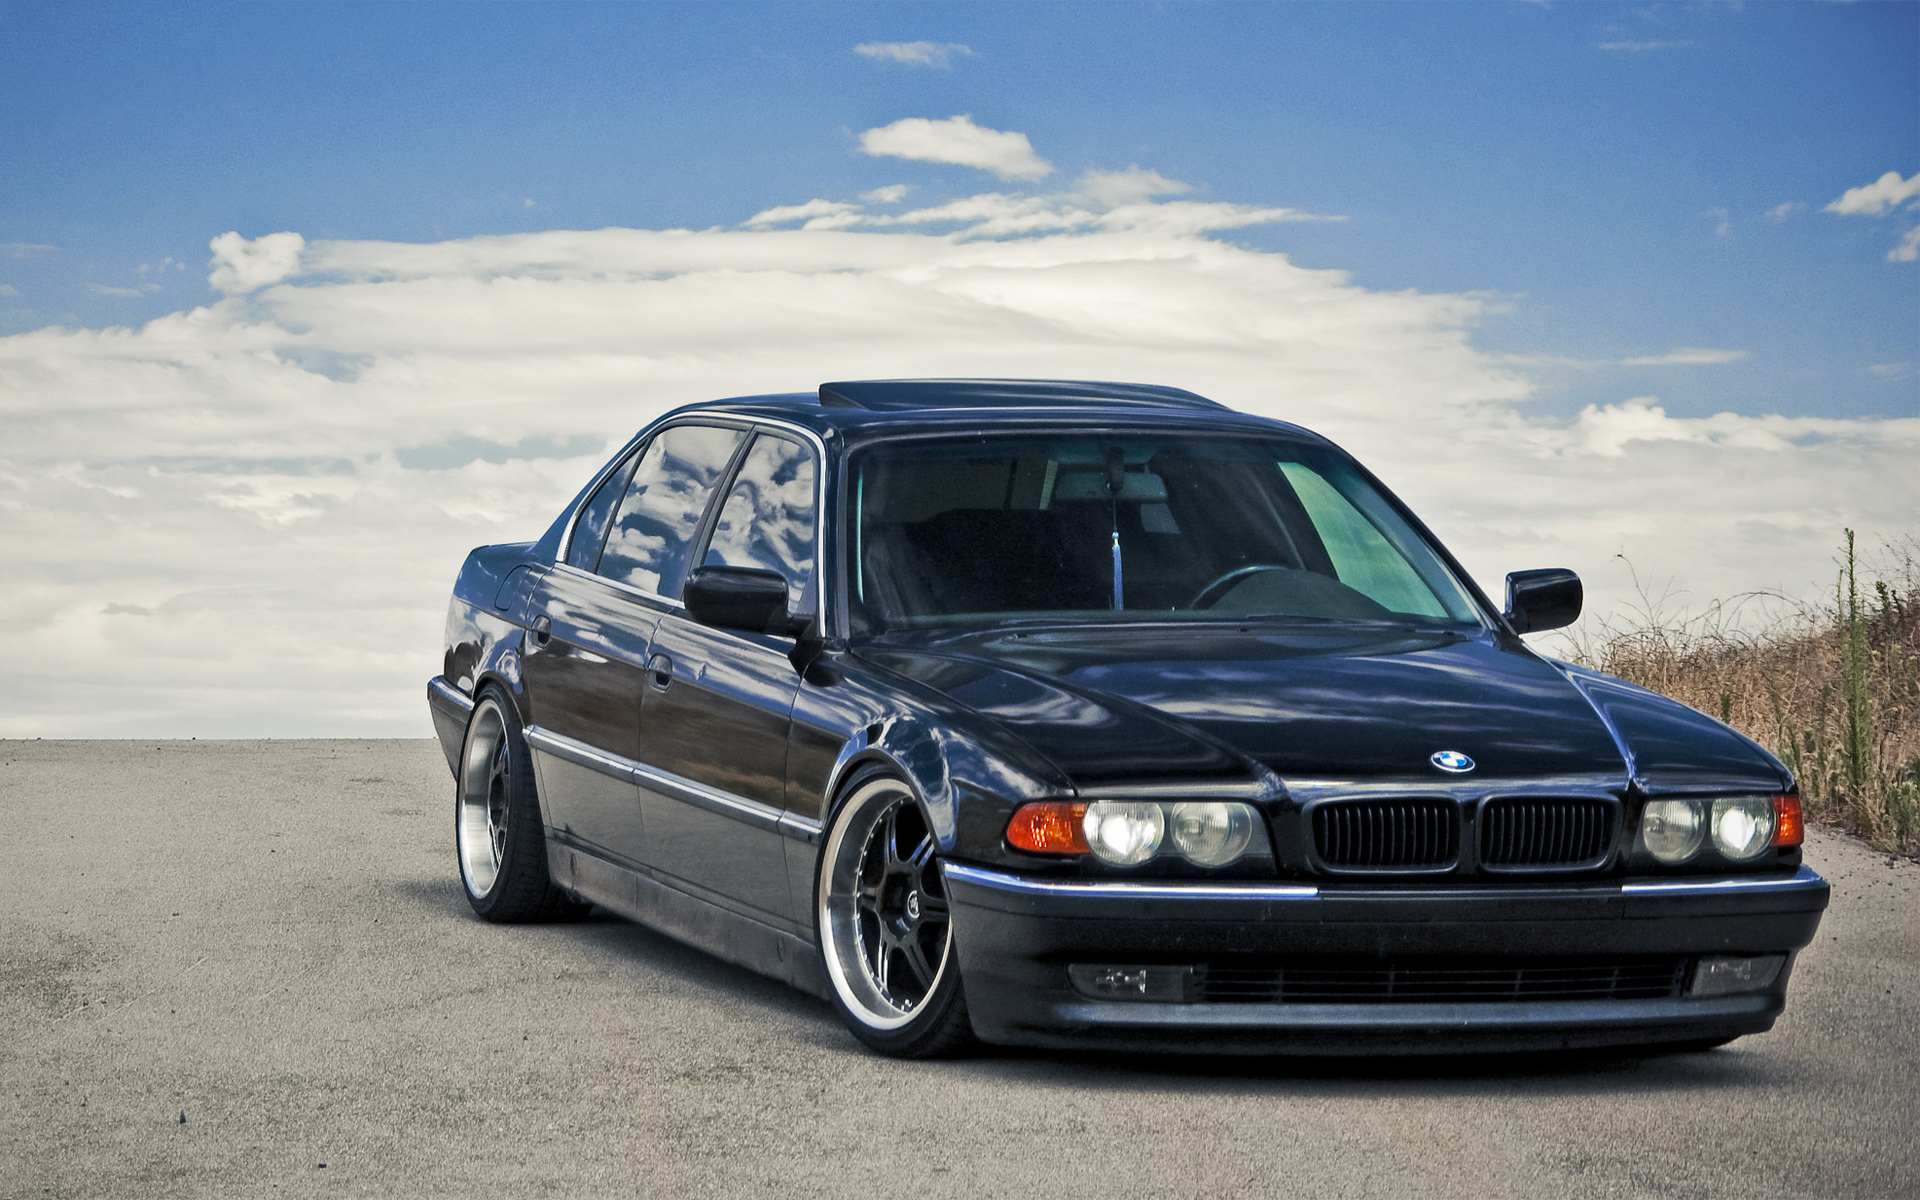 While we receive compensation when you click links t. Bmw 7 Series Old 1920x1200 Wallpaper Teahub Io